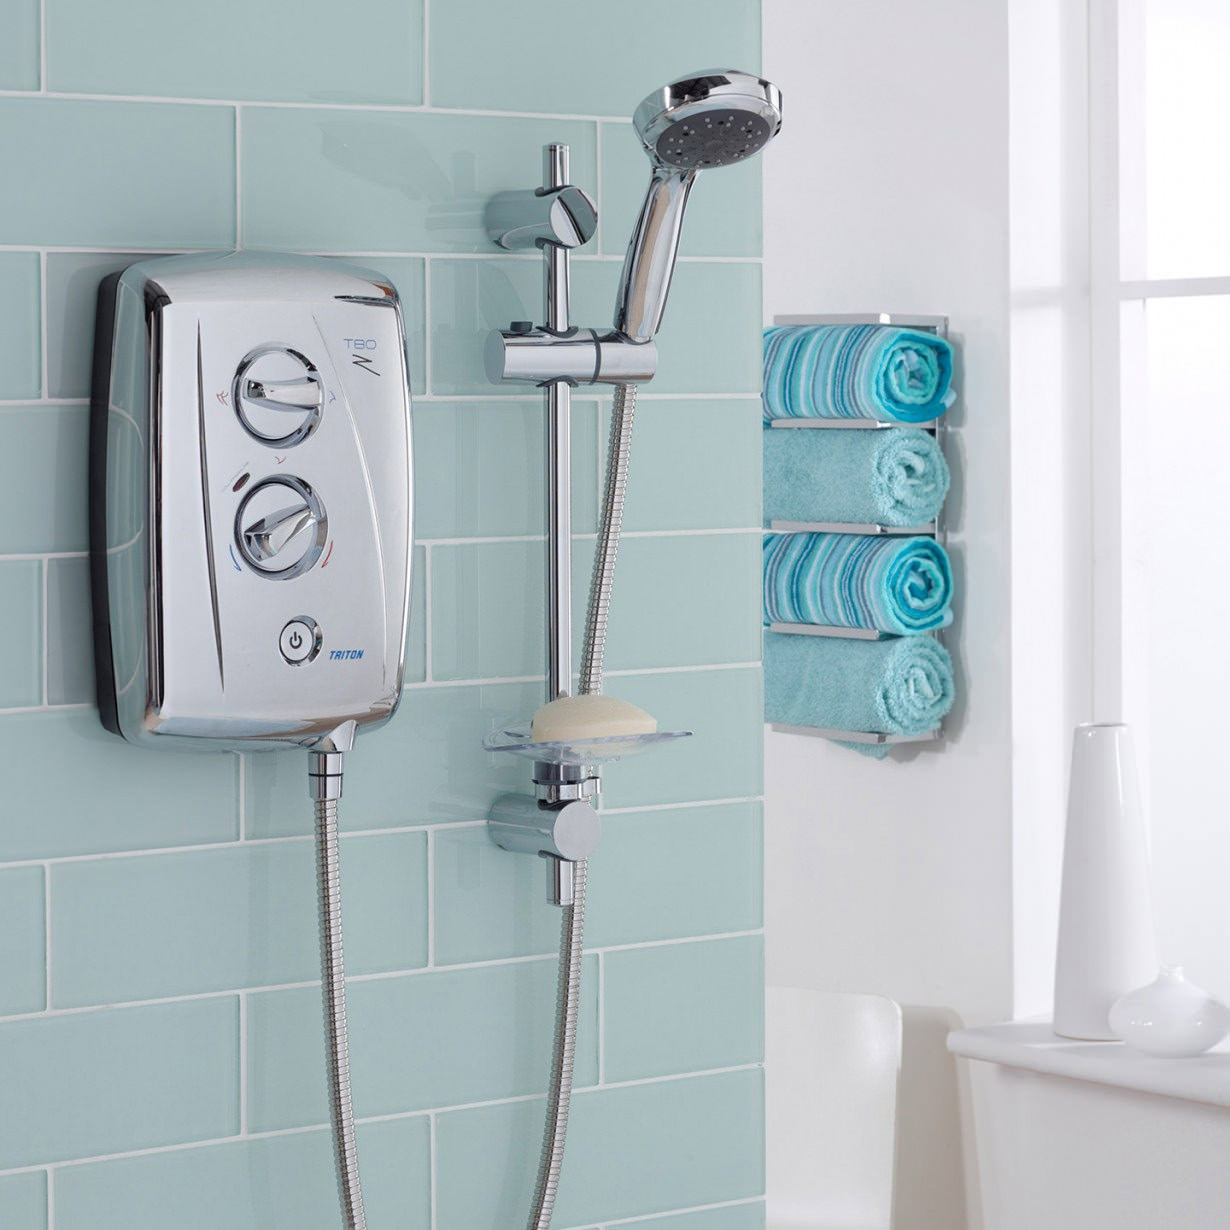 Fit Electric Towel Rail Bathroom Best House Interior Today Wiring Triton T80z Fast Shower 9 5 Kw Chrome Install